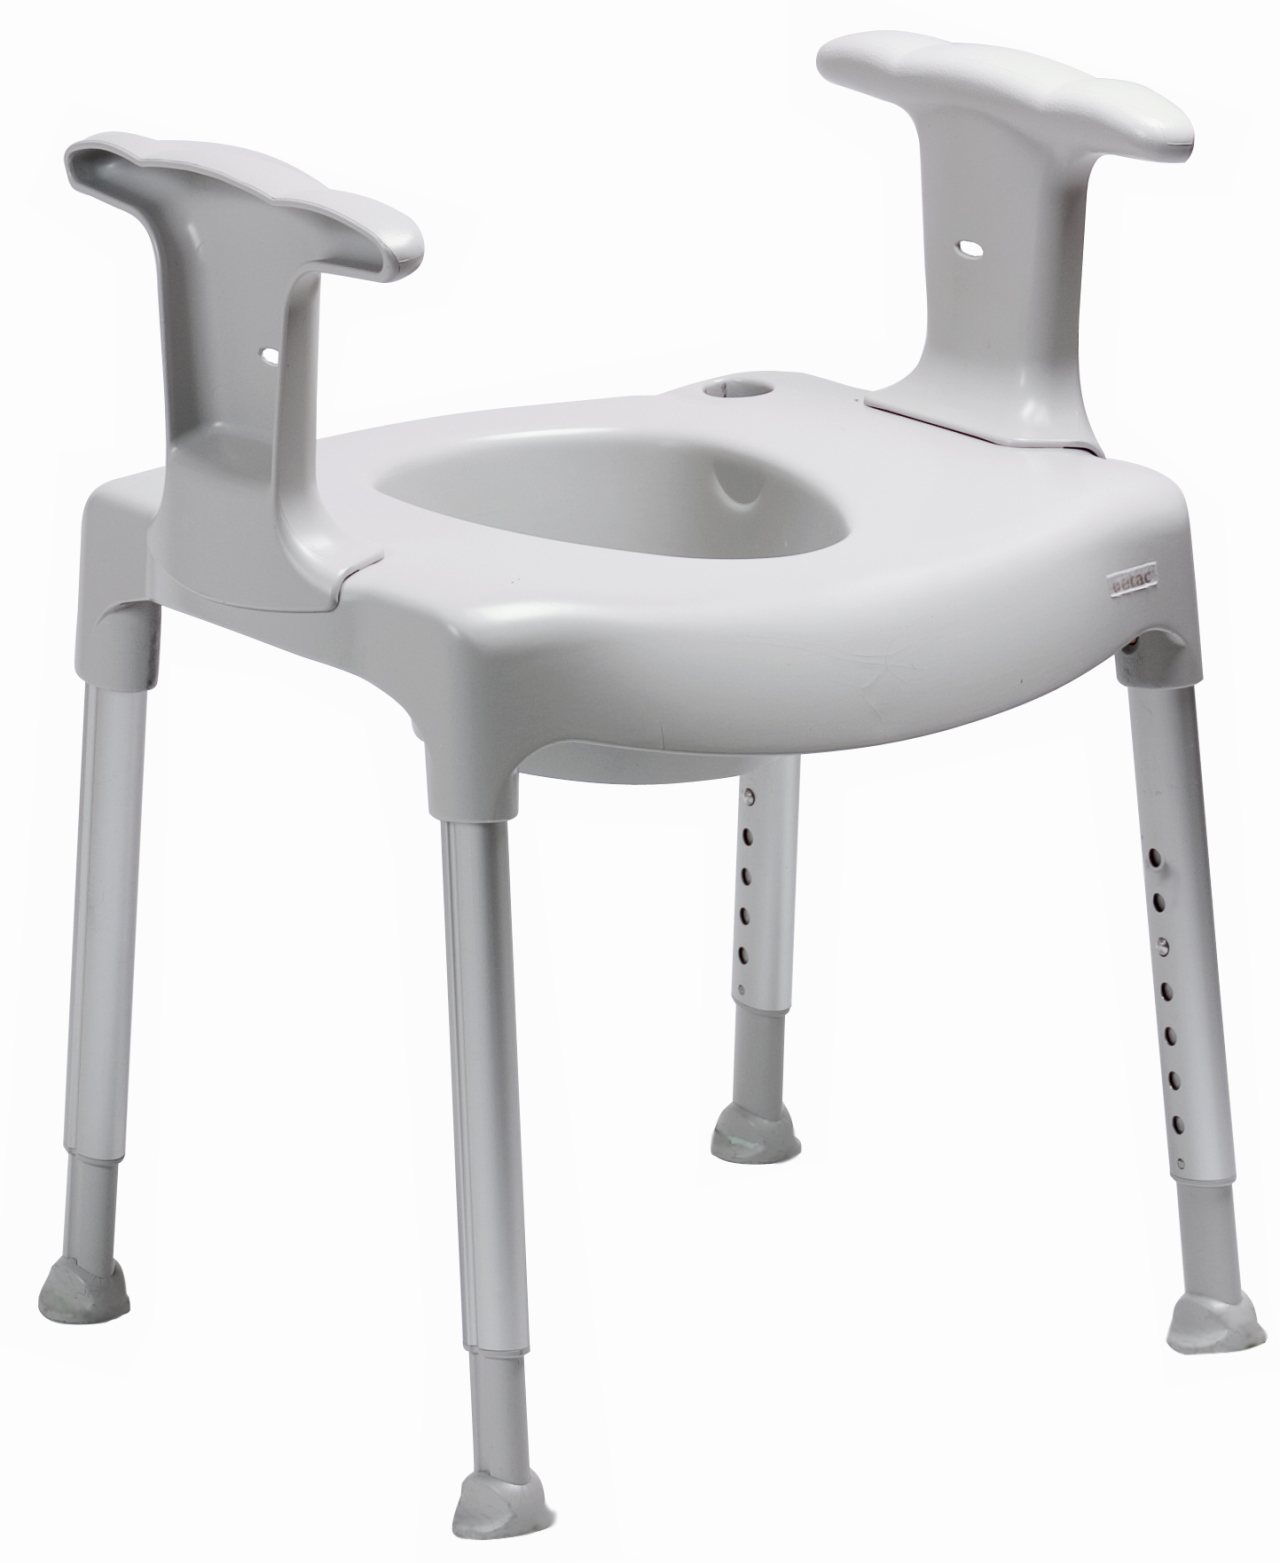 Etac Swift Freestanding toilet seat raiser